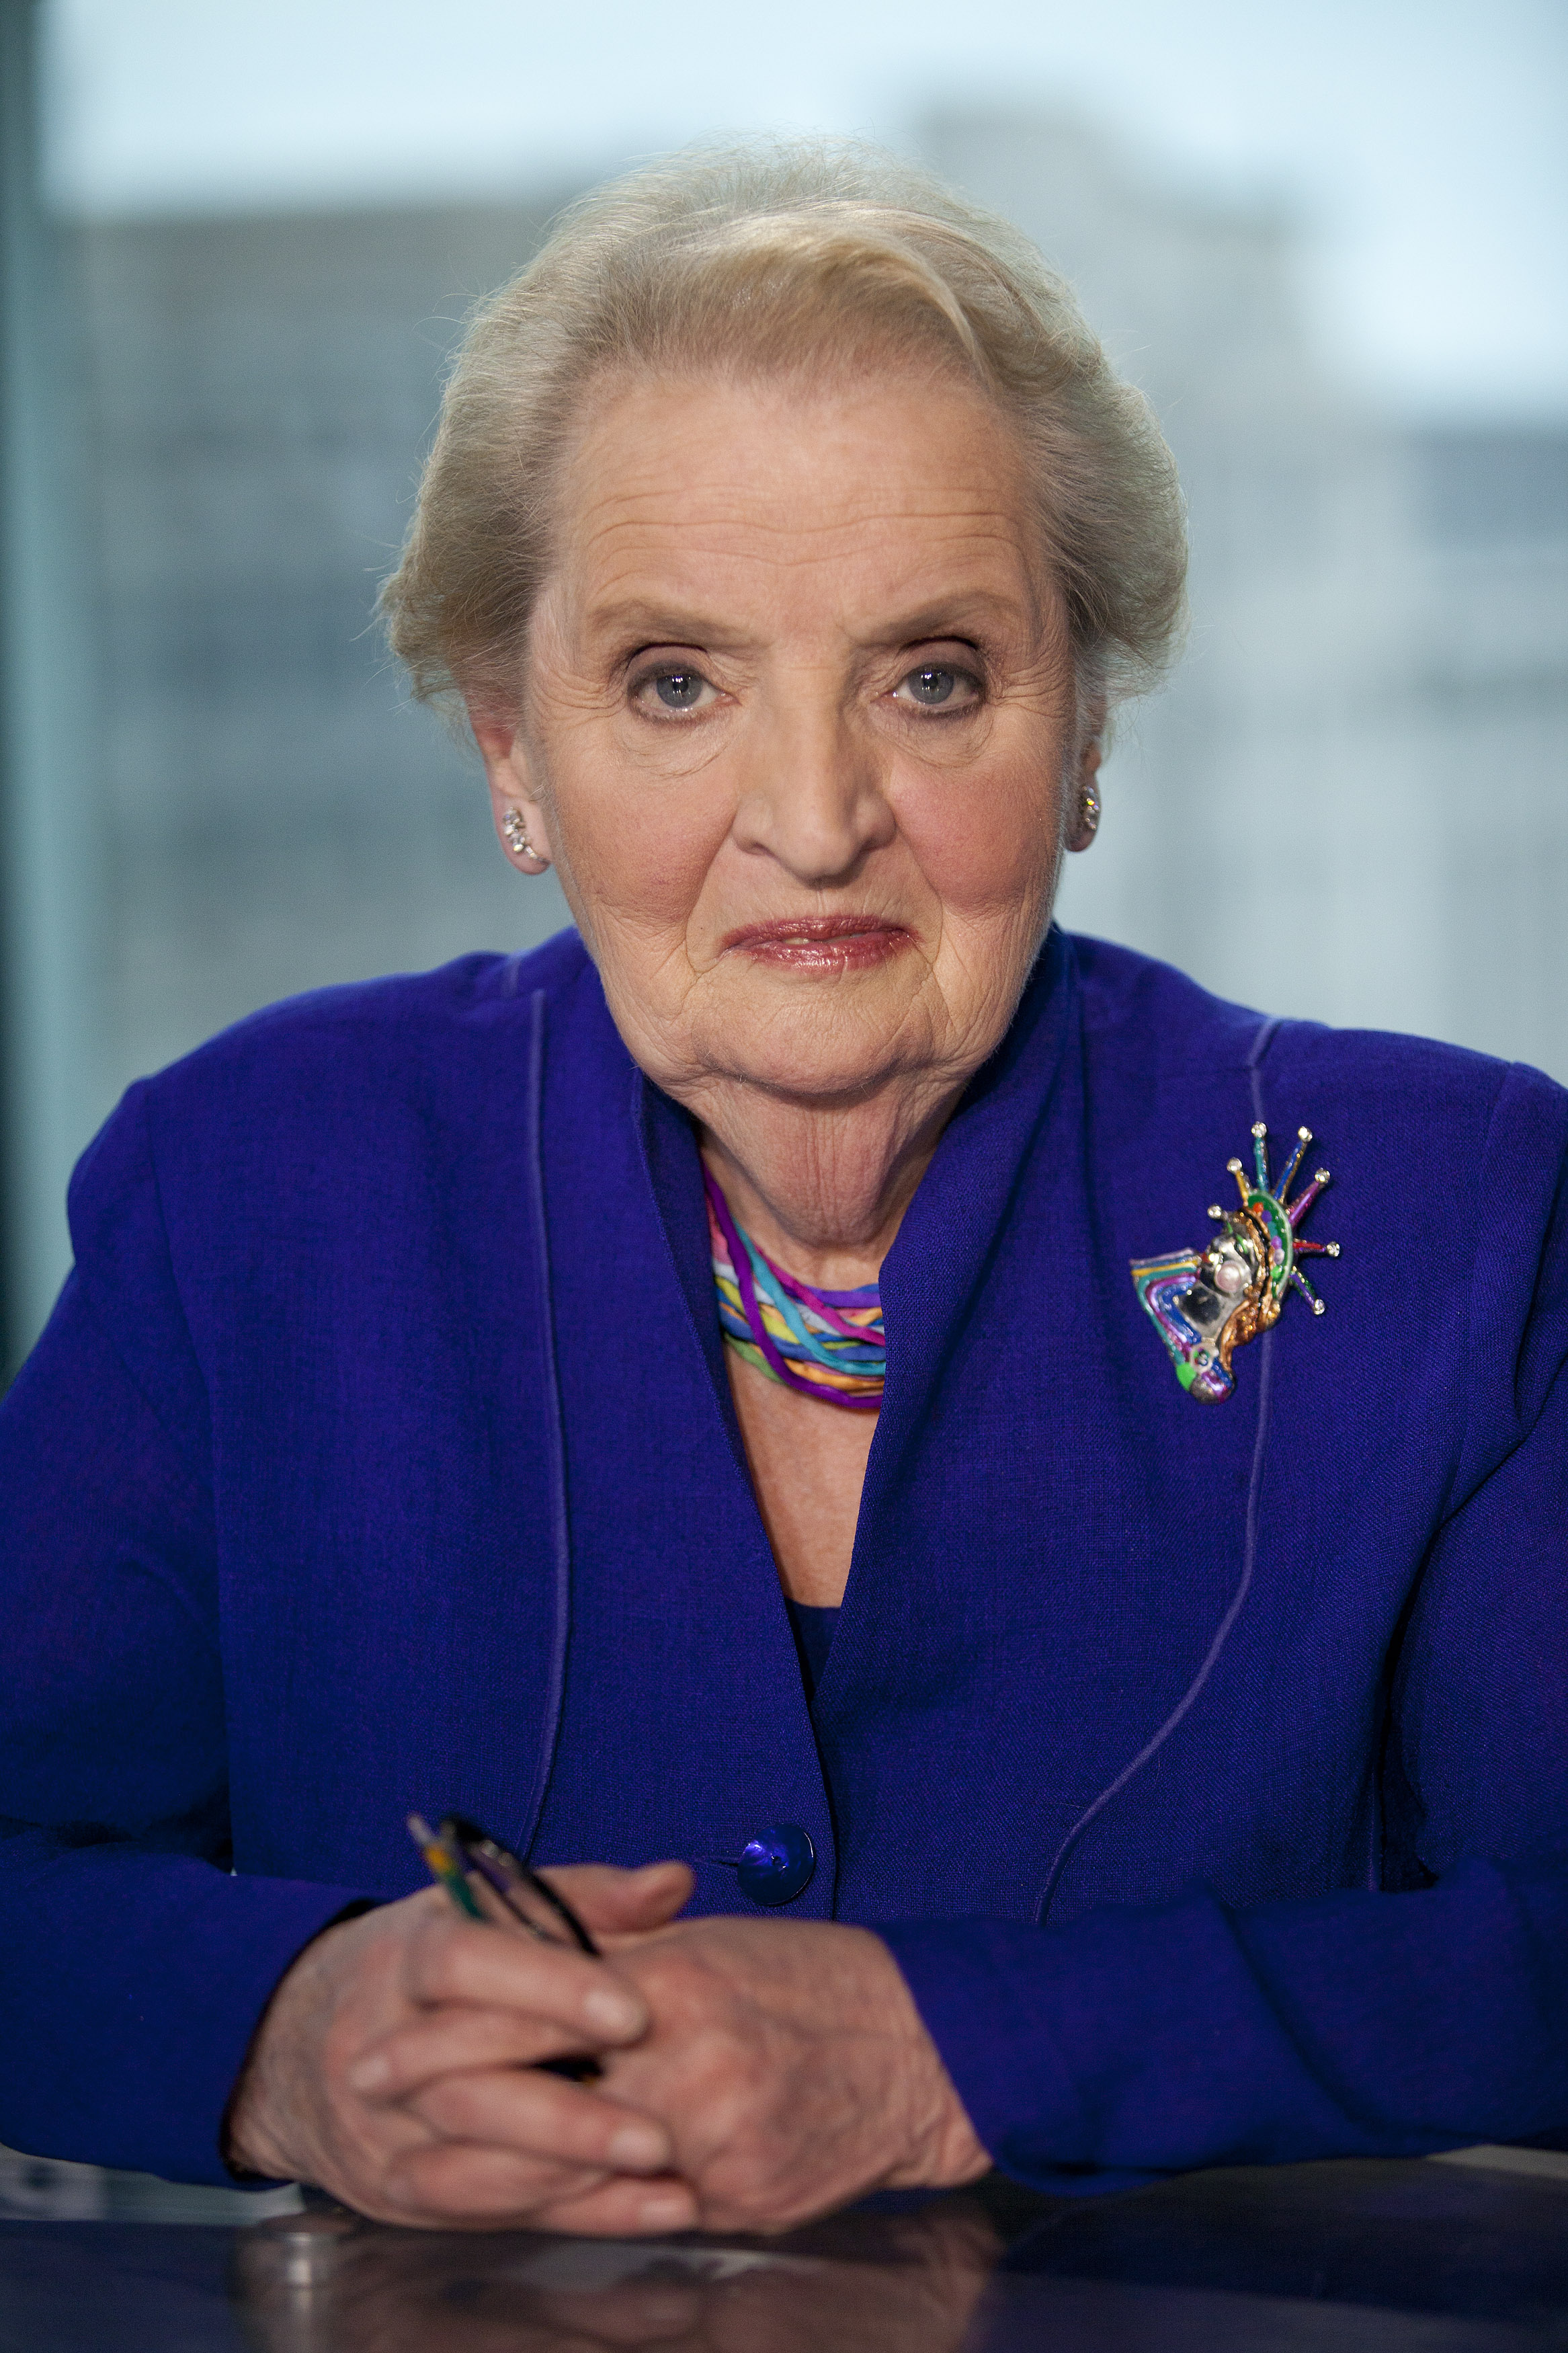 Madeleine Albright, former Secretary of State and founder of the Albright Stonebridge Group LLC, sits for a photograph in Washington, D.C., on May 22, 2012.